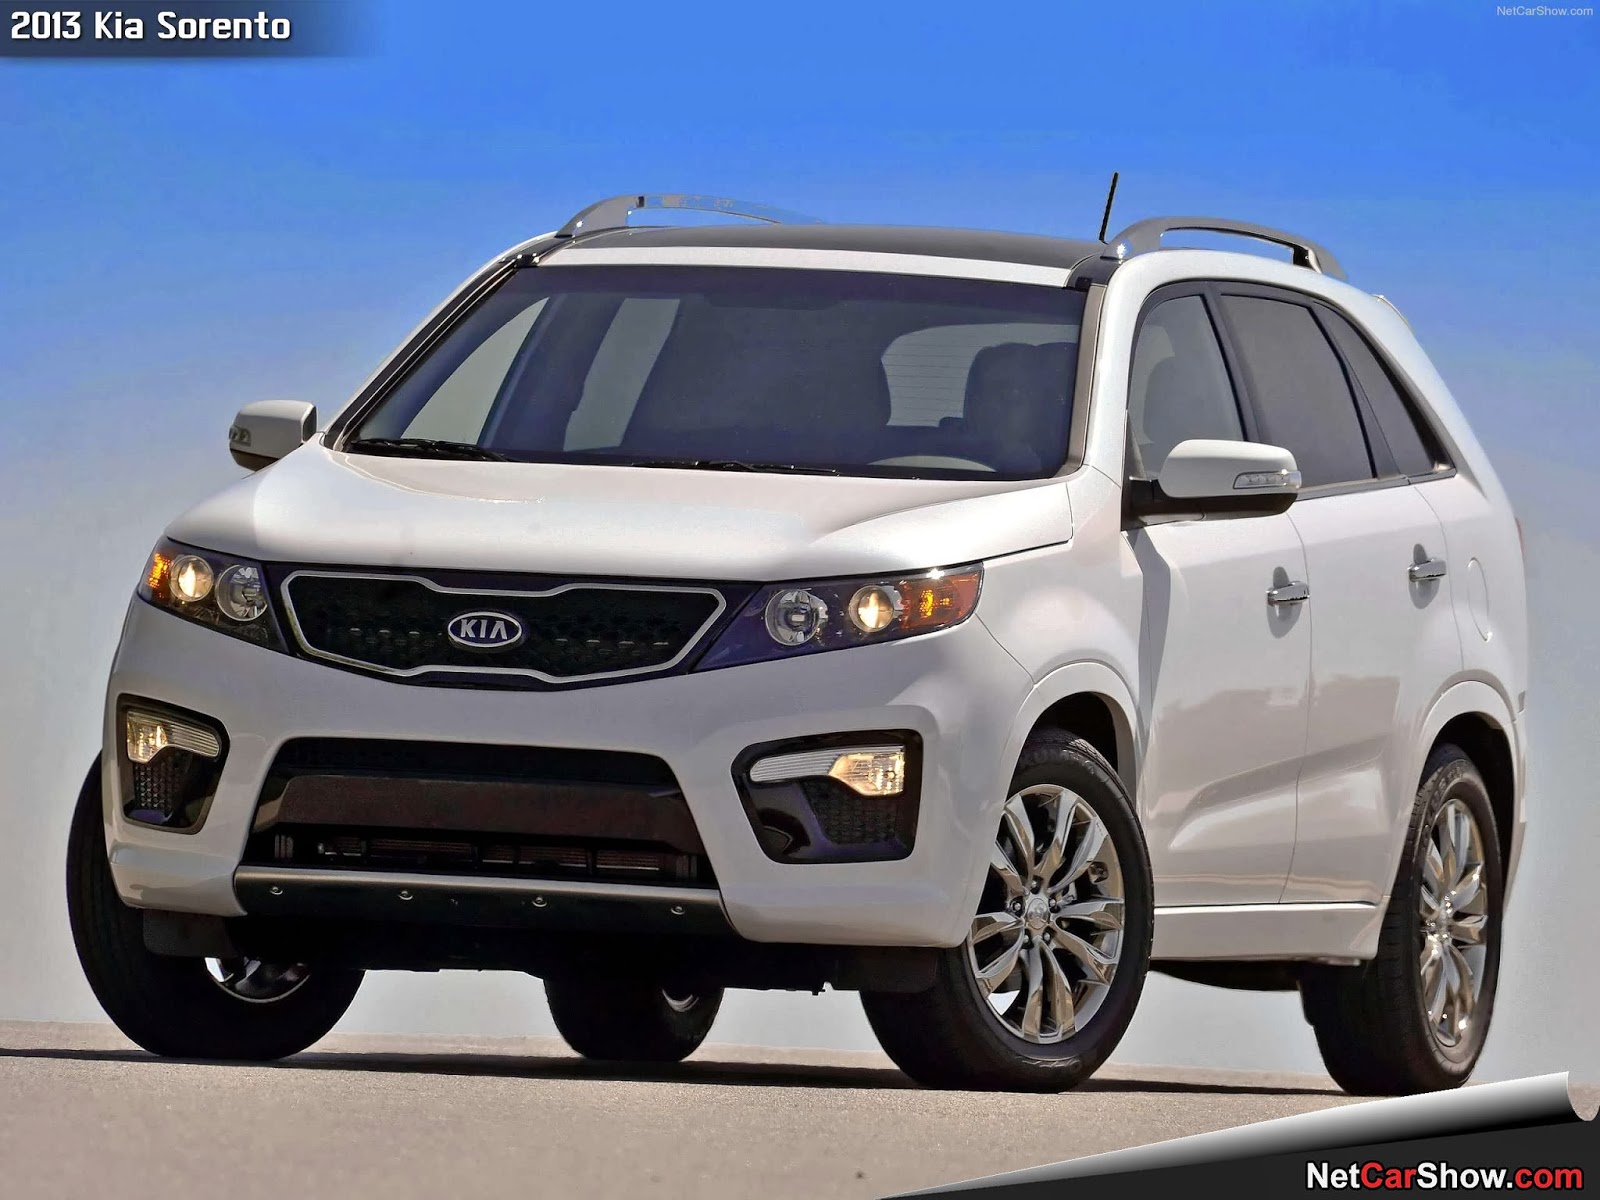 Cars Fuses 2013 Kia Sorento Ceed Fuse Box Location